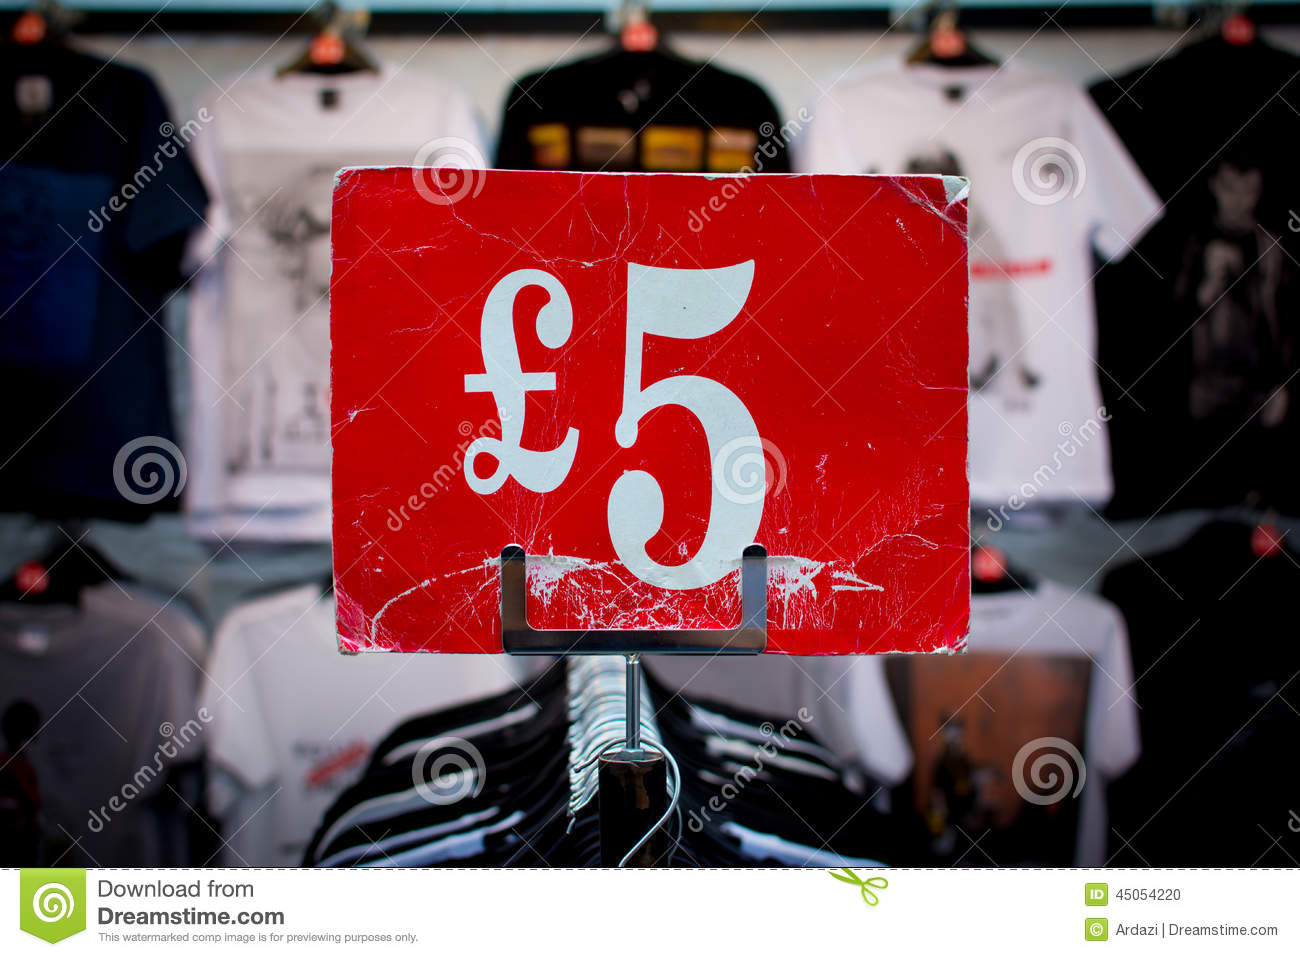 Cheap womens clothing, shoes, bags, accessories with over 70% of styles under £5. Almost everything £5 or less and all under £10 here at LessThan10Pounds.